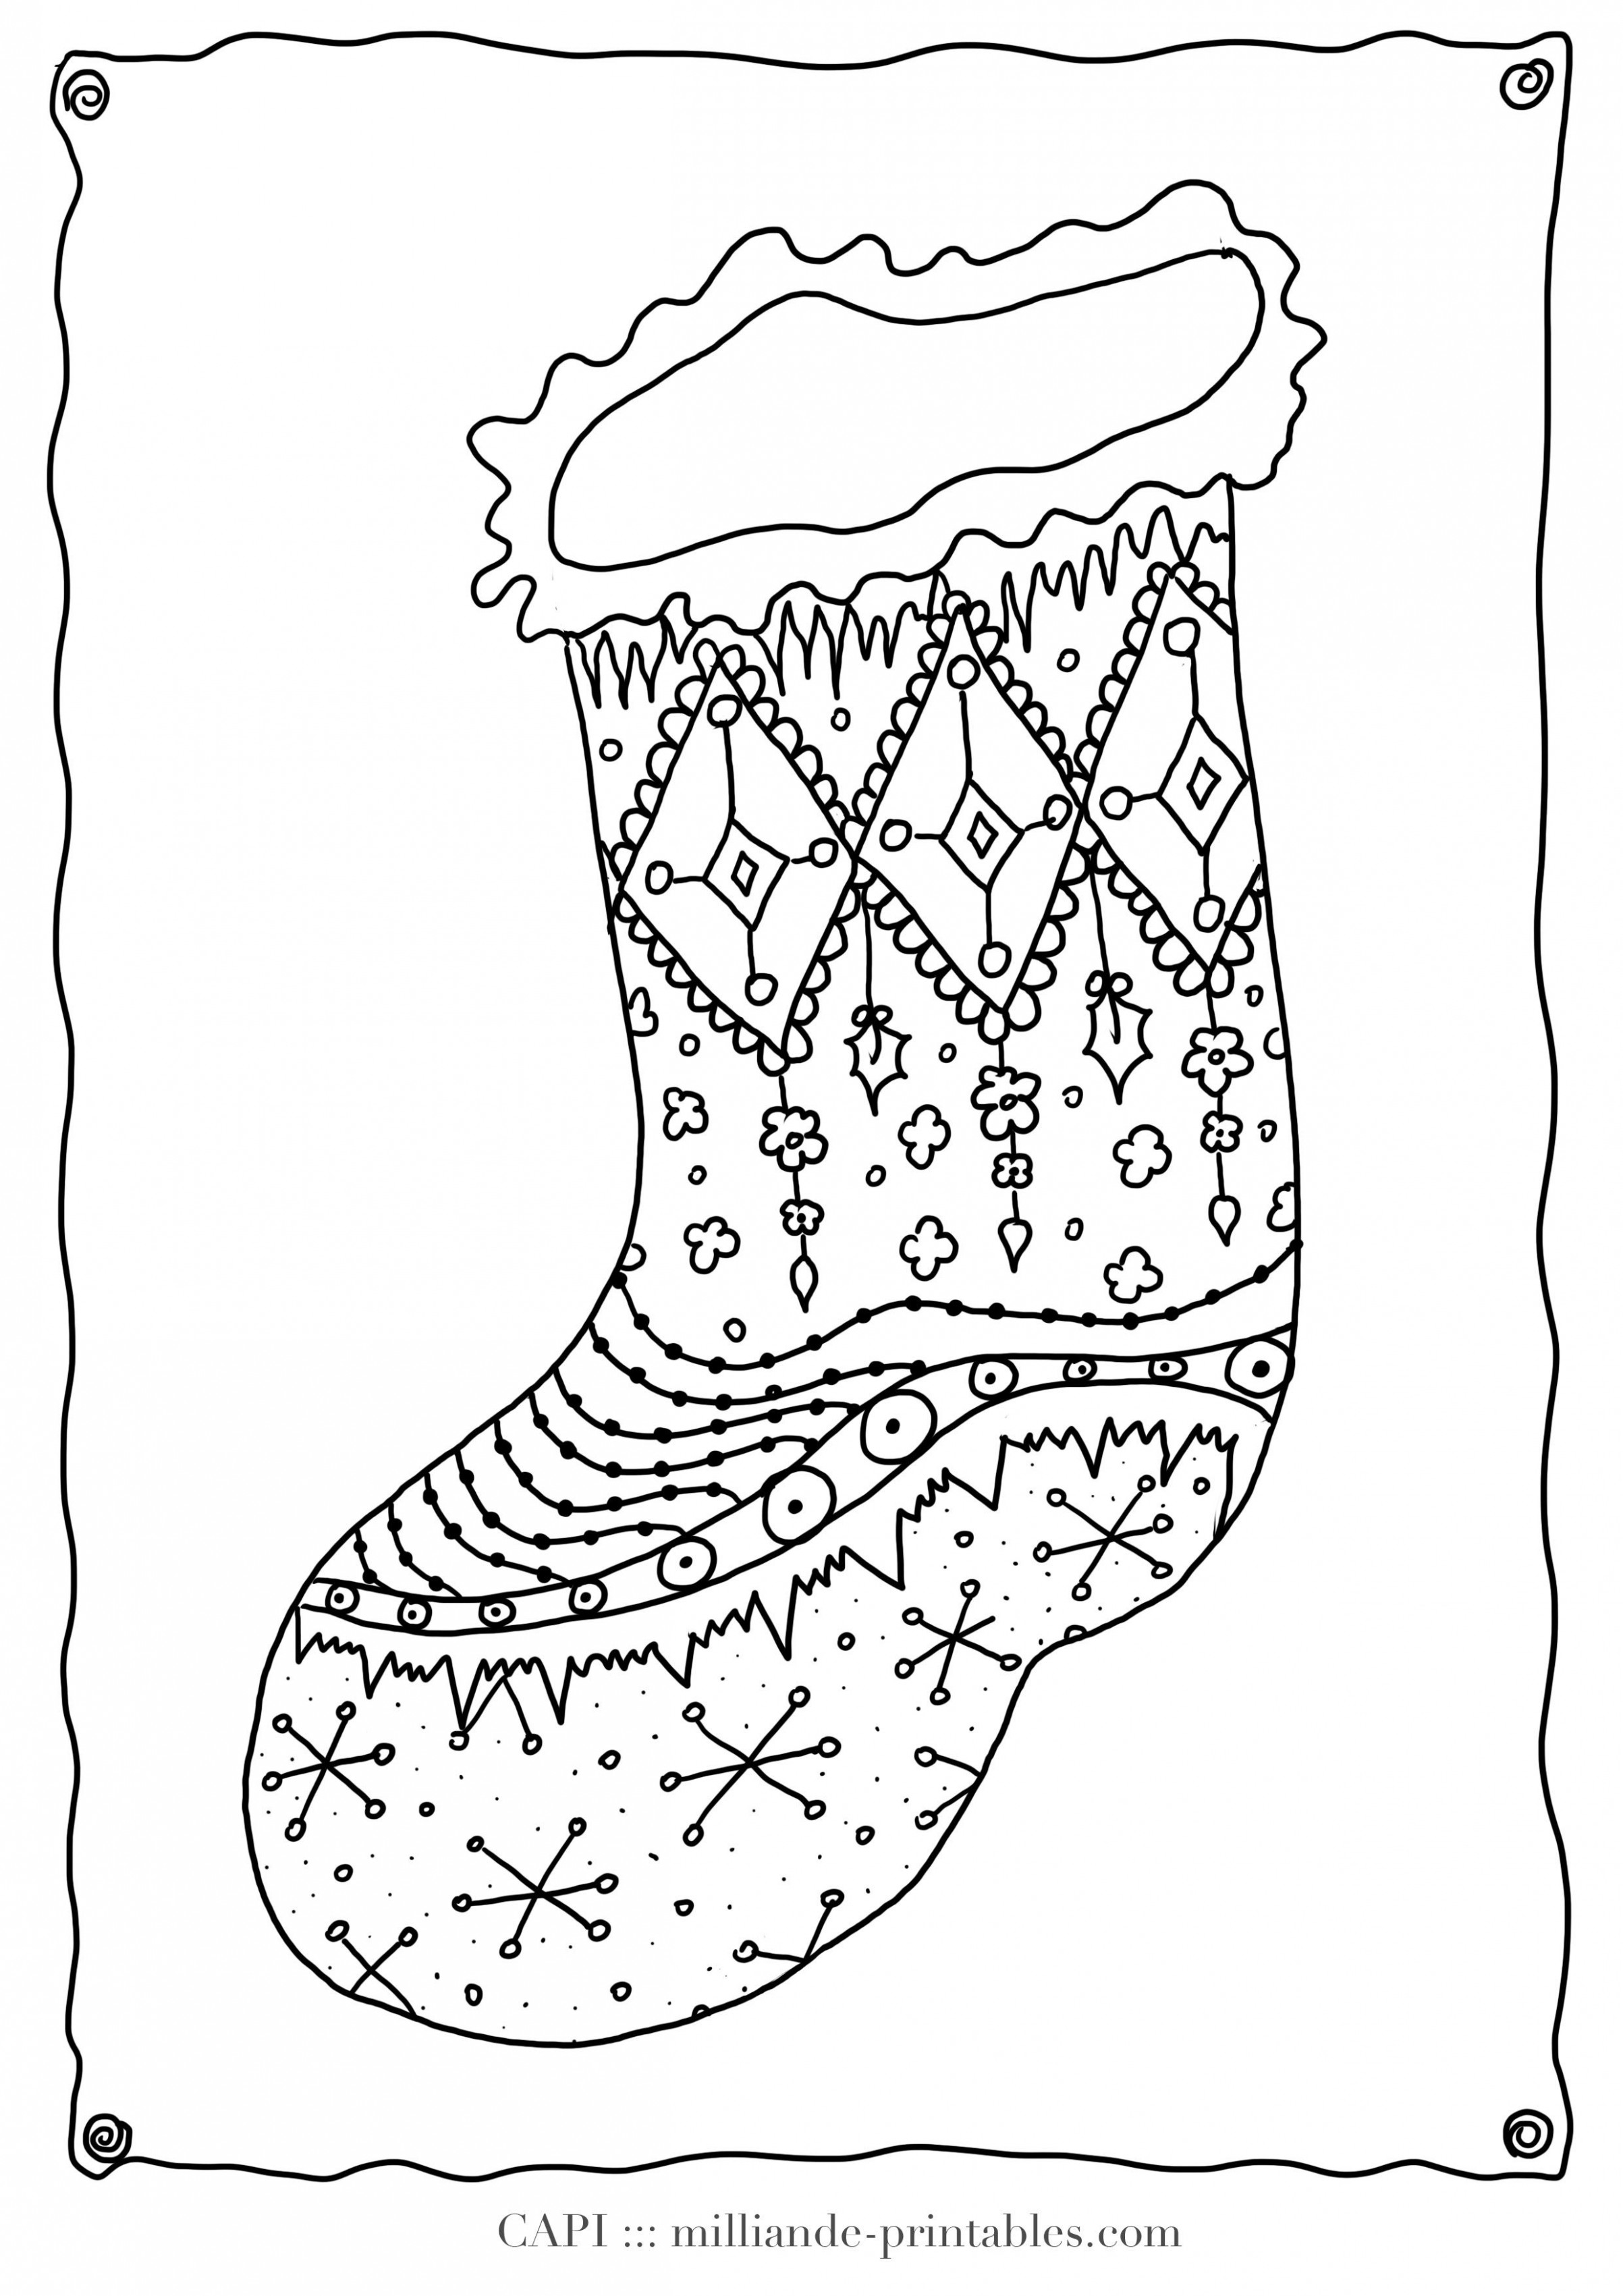 Pin by catherine nirmala on stockings | Christmas coloring pages ...